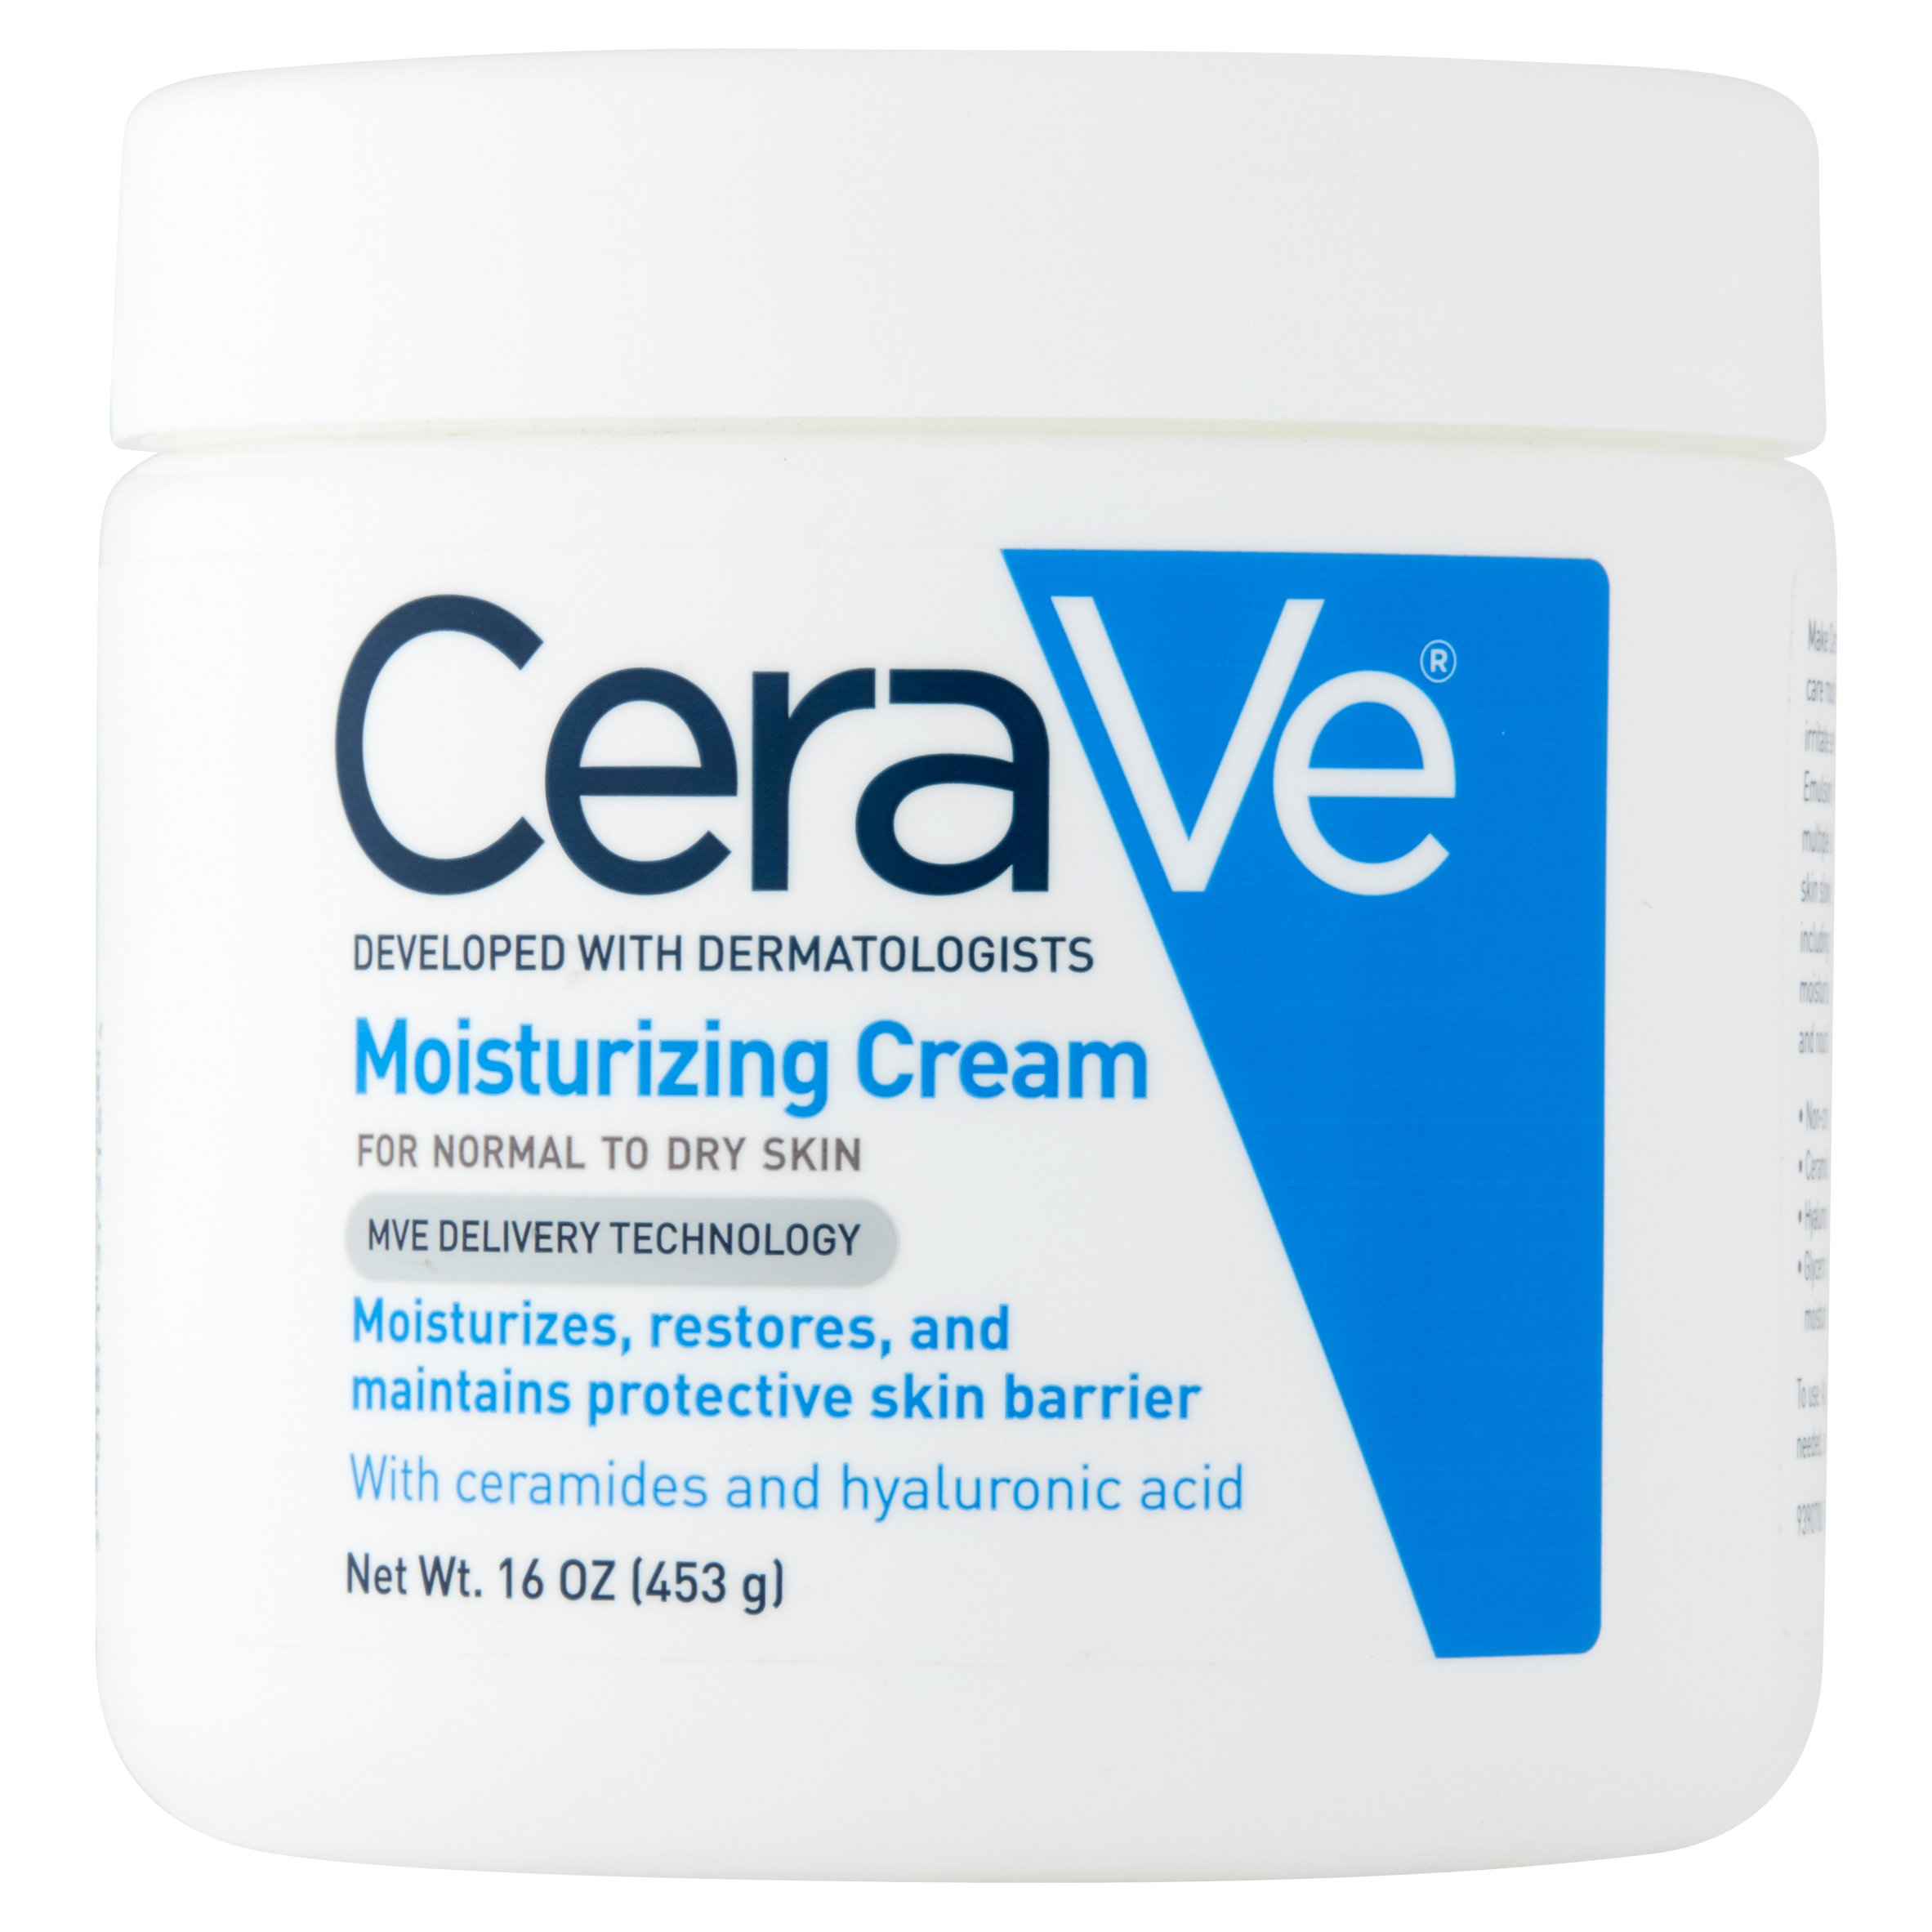 CeraVe Moisturizing Cream, 16 oz by Valeant Consumer Products, a division of Valeant Pharmaceuticals North America LLC